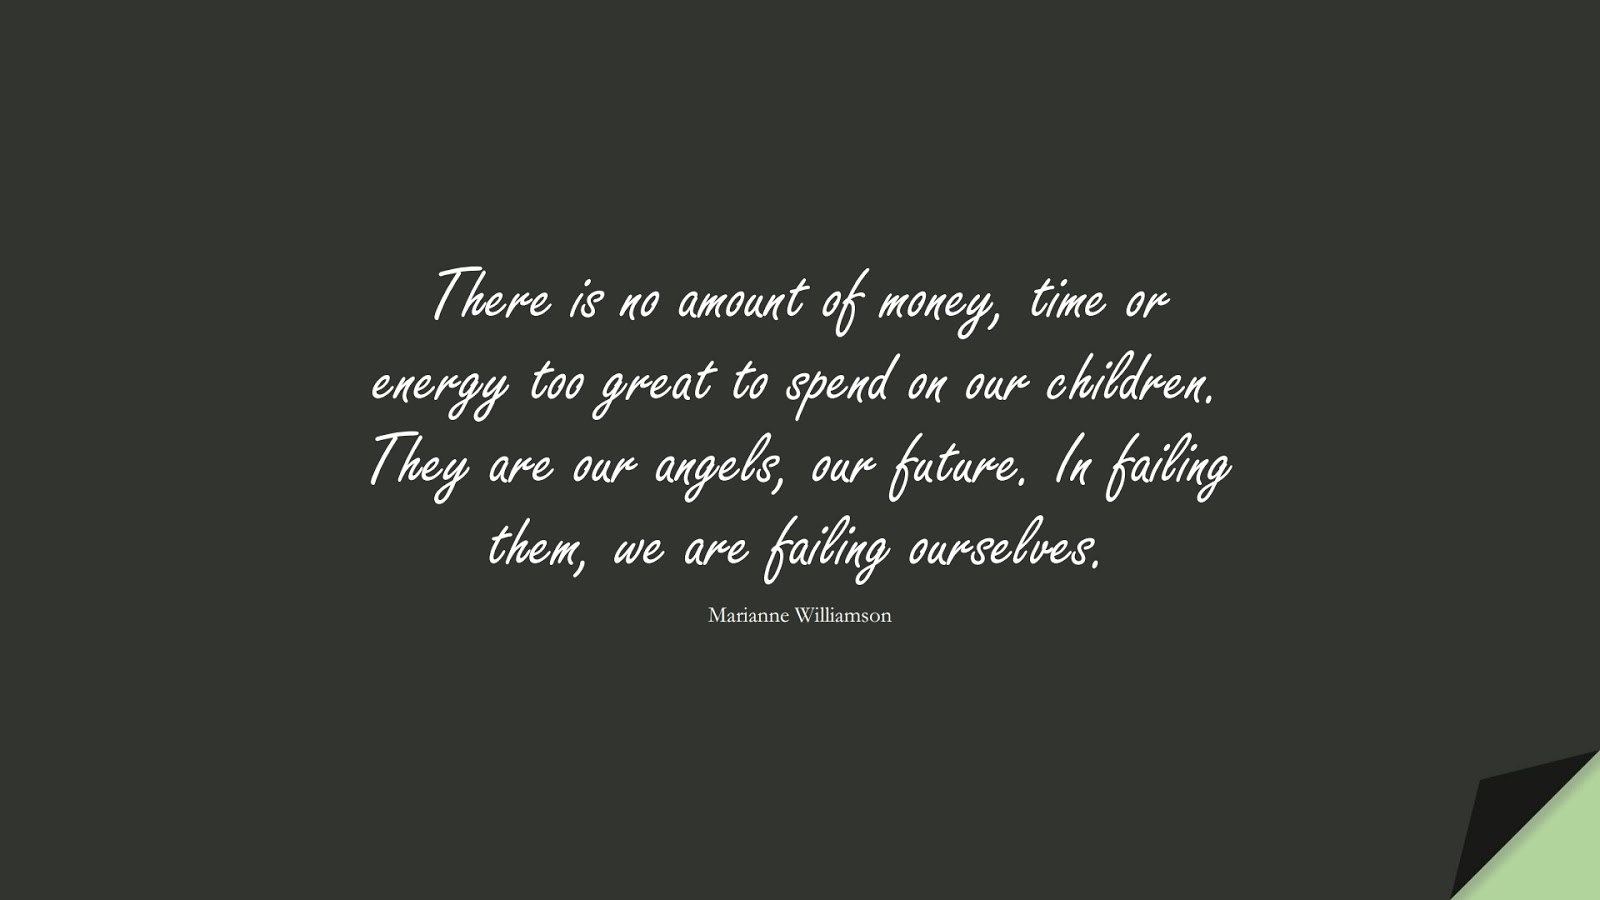 There is no amount of money, time or energy too great to spend on our children. They are our angels, our future. In failing them, we are failing ourselves. (Marianne Williamson);  #MoneyQuotes